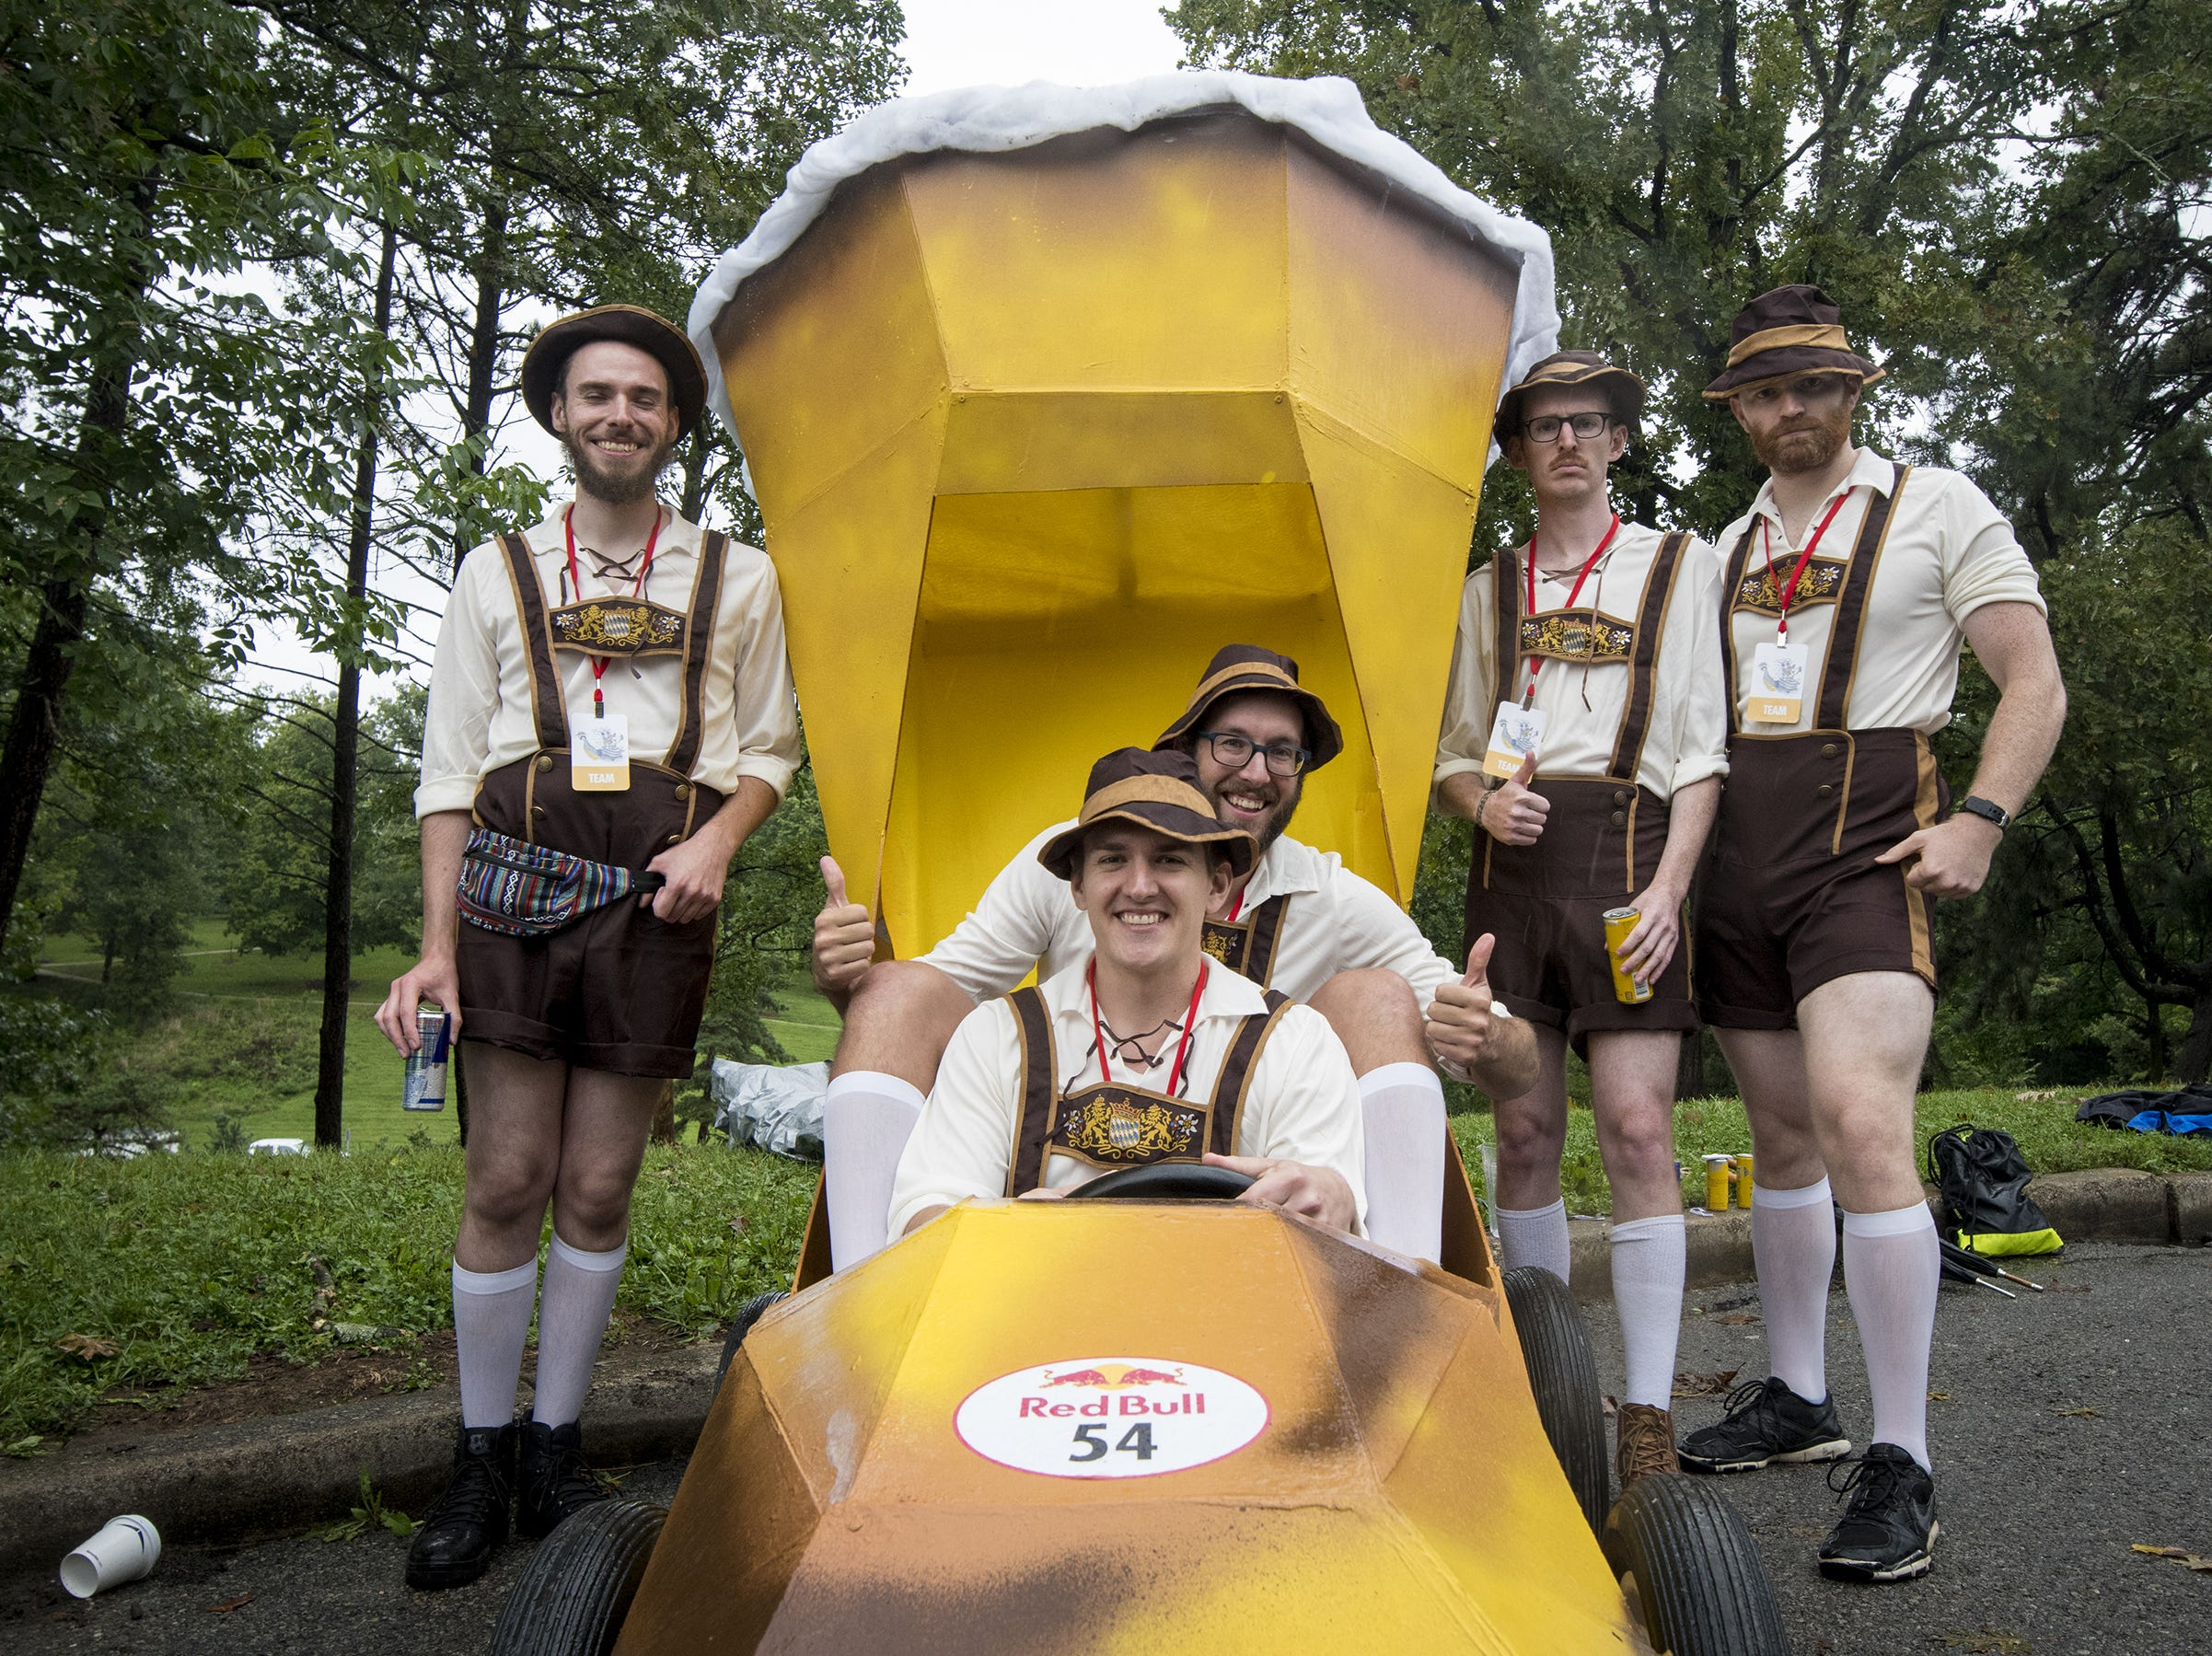 Adam Fisk and Matt Boris of Indianapolis sit in their boot-stein soapbox car with the rest of team OktoberFast before the Red Bull Soapbox Derby Saturday, September 8, 2018 in Cincinnati, Ohio.